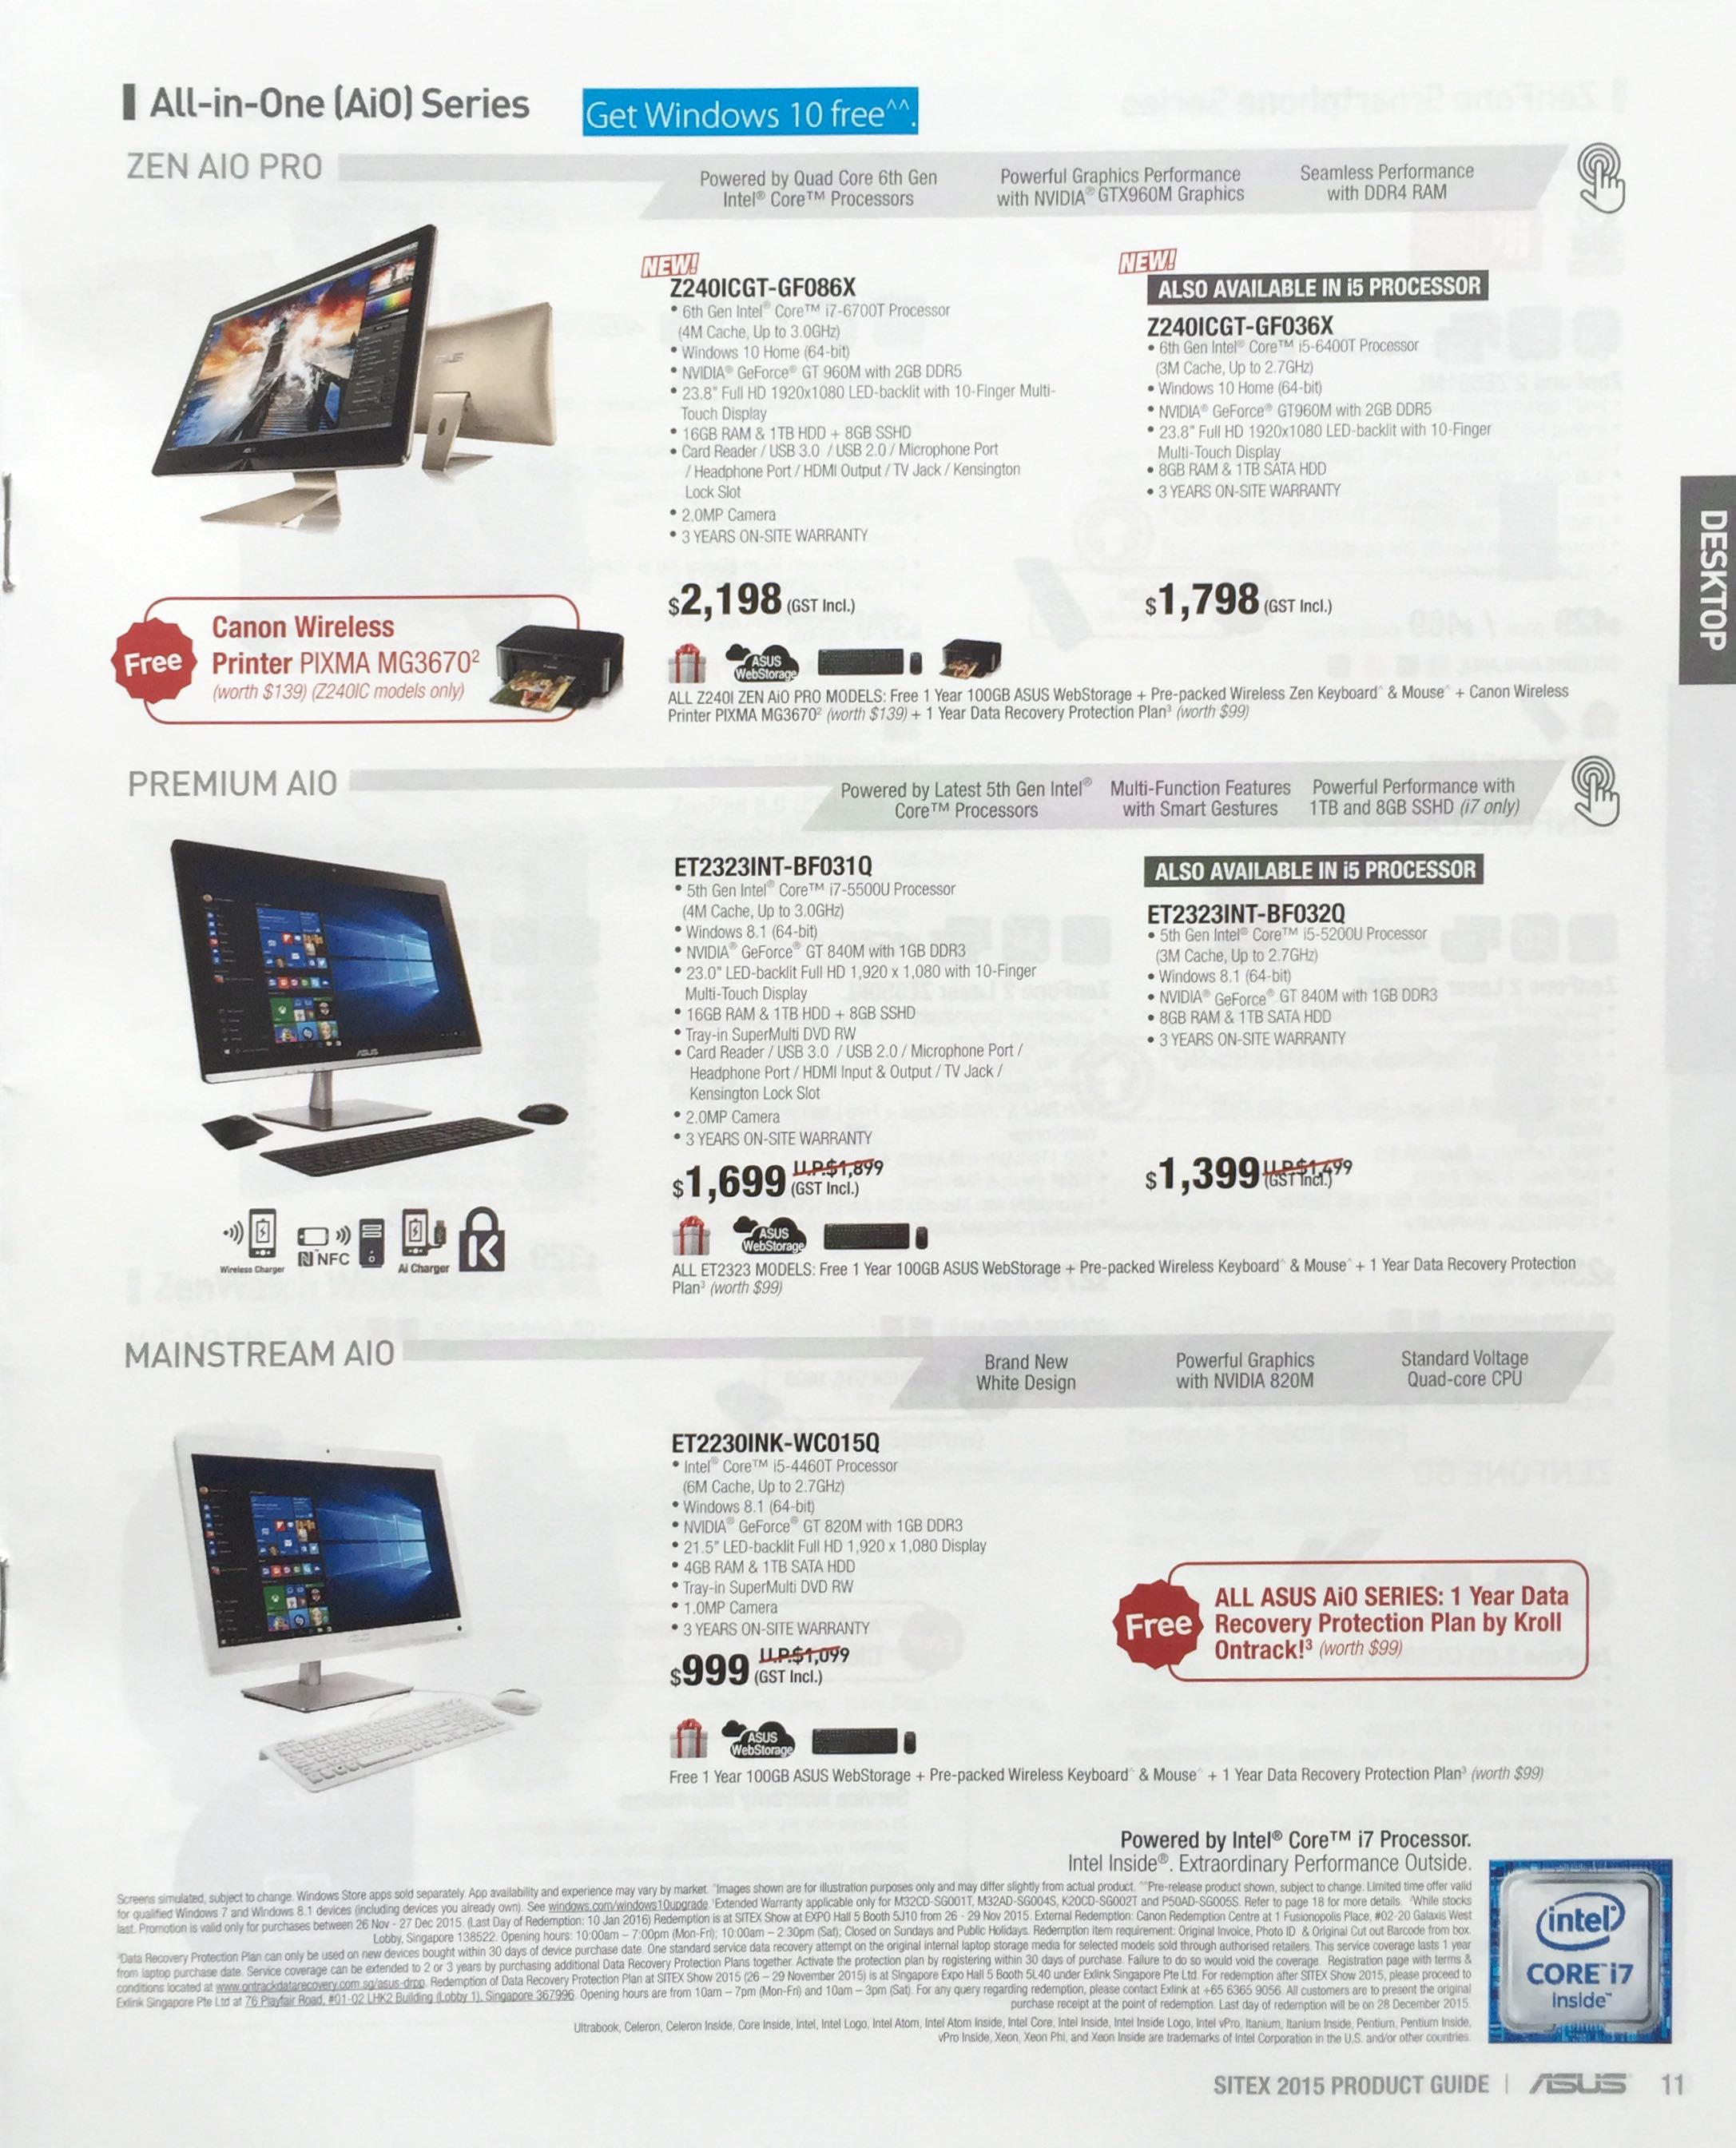 ASUS @ SITEX 2015 - All-in-One Desktop Series